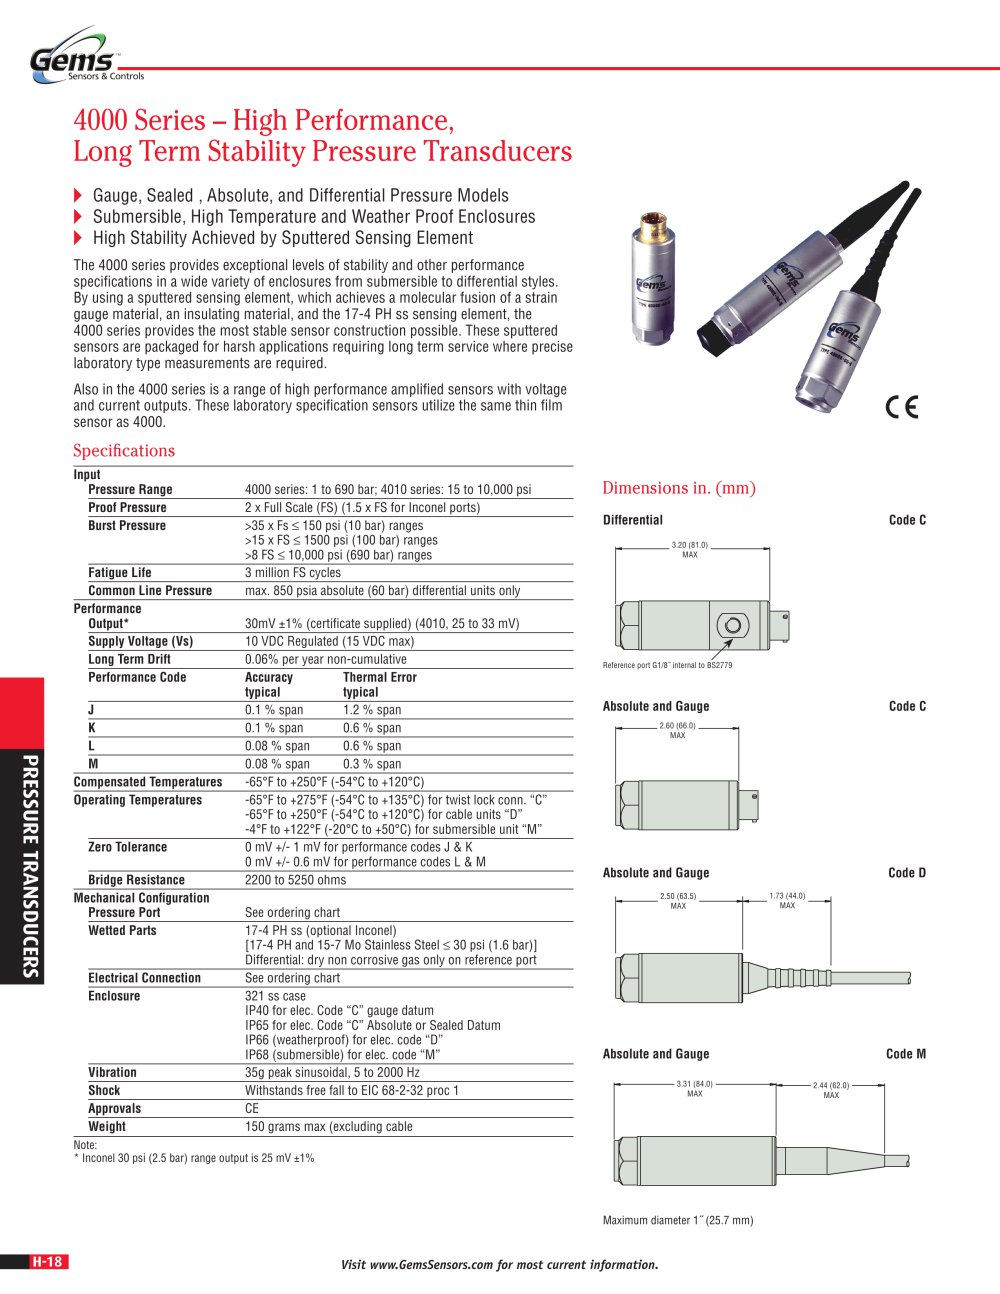 honeywell tje pressure transducer wiring diagram wireless router bioart sensotec : 43 images - diagrams ...